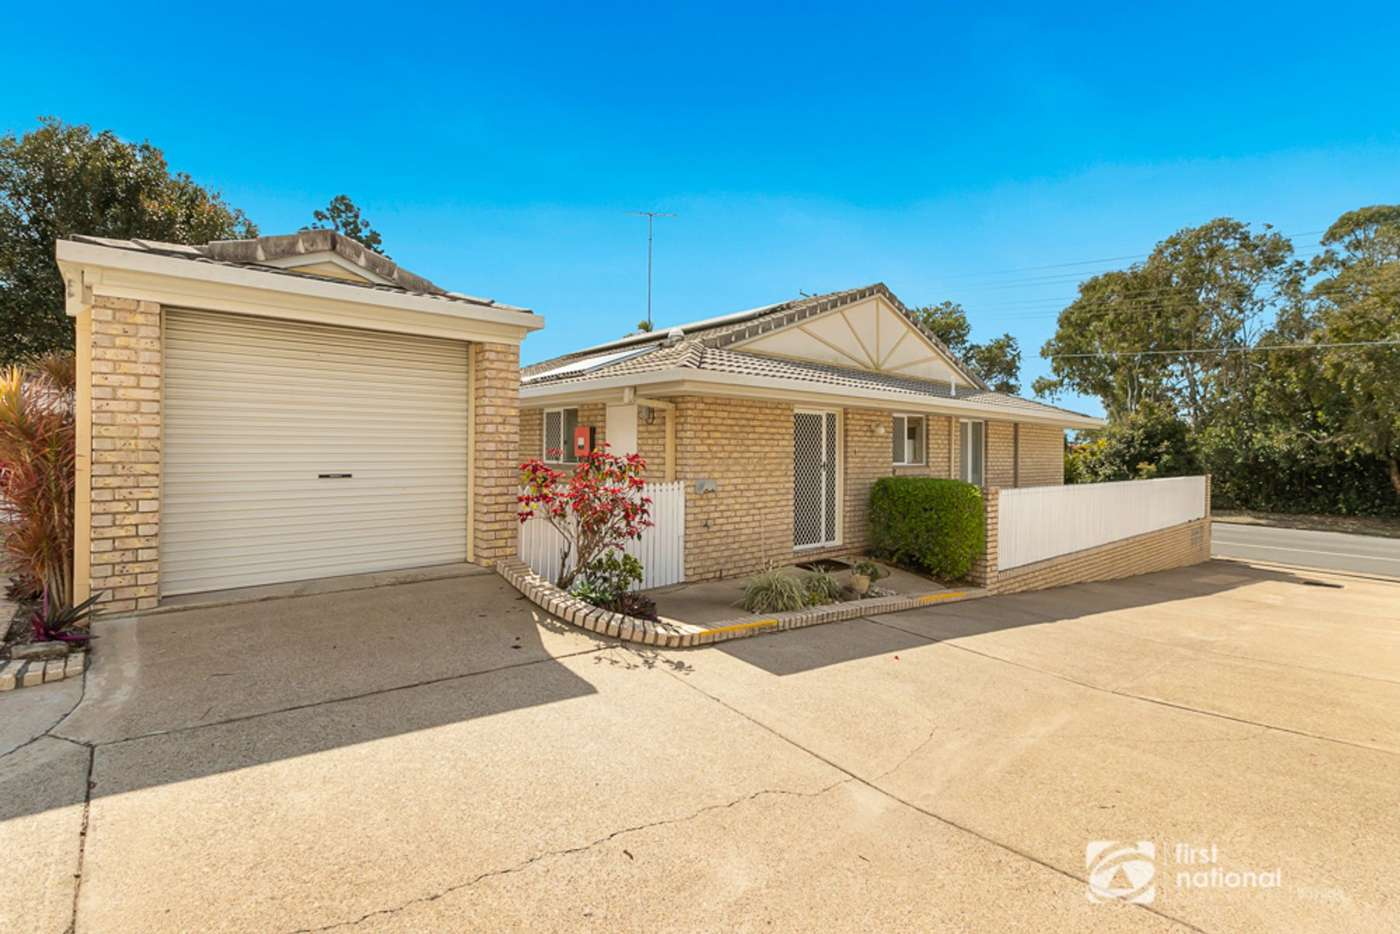 Main view of Homely villa listing, 1/66 Agnes Street, Birkdale QLD 4159